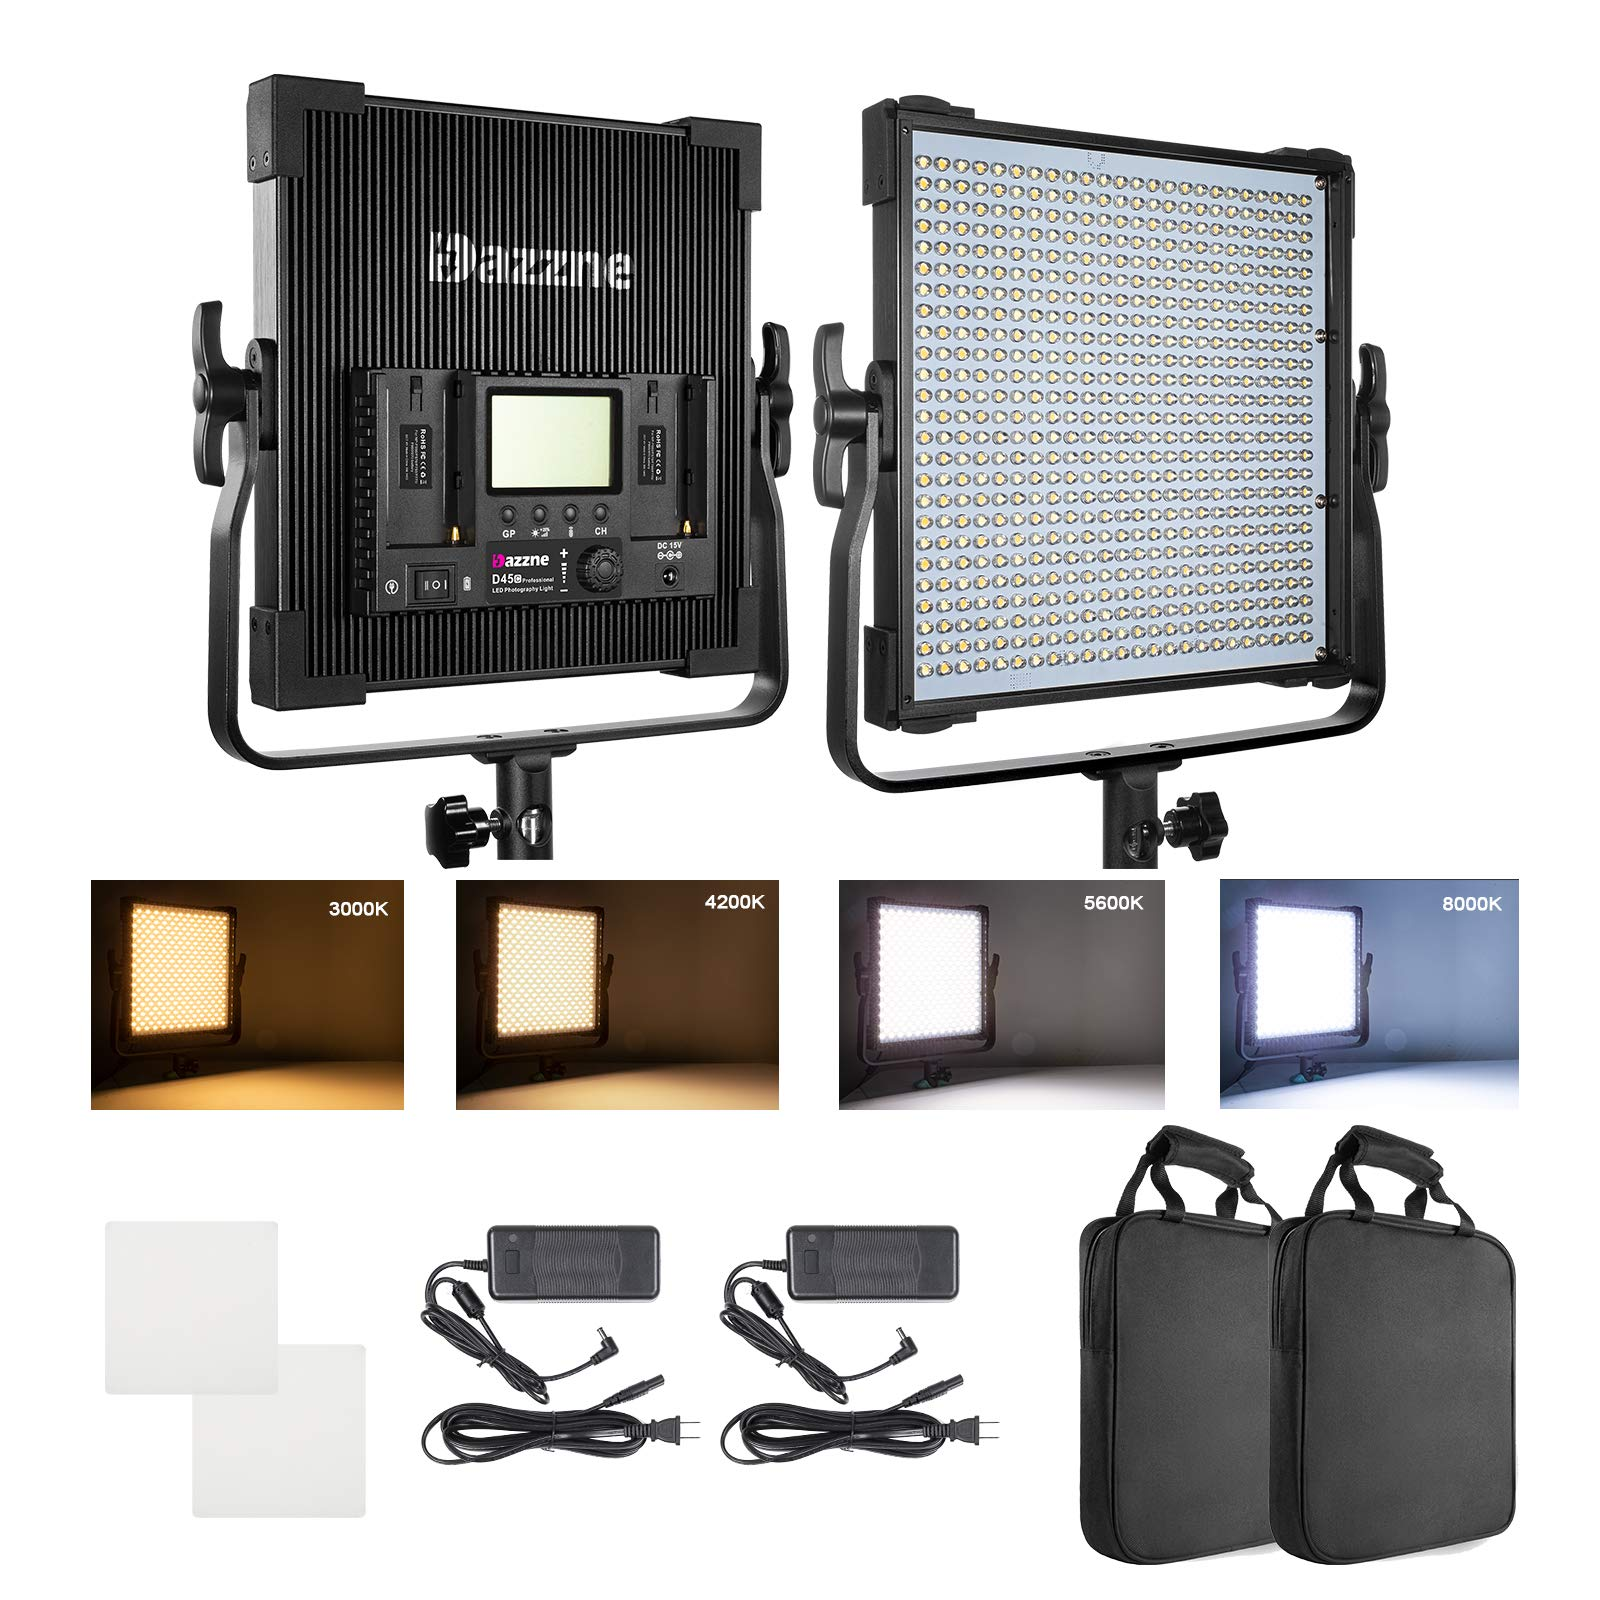 Bi-Color LED Panel Light Photography Kit 3000K-8000K 45W 19000 Lux TLCI 96 Dimmable Continuous Output Lighting Studio YouTube Video Shooting 48CH 6 Groups 1-100% Brightness 2 Pack